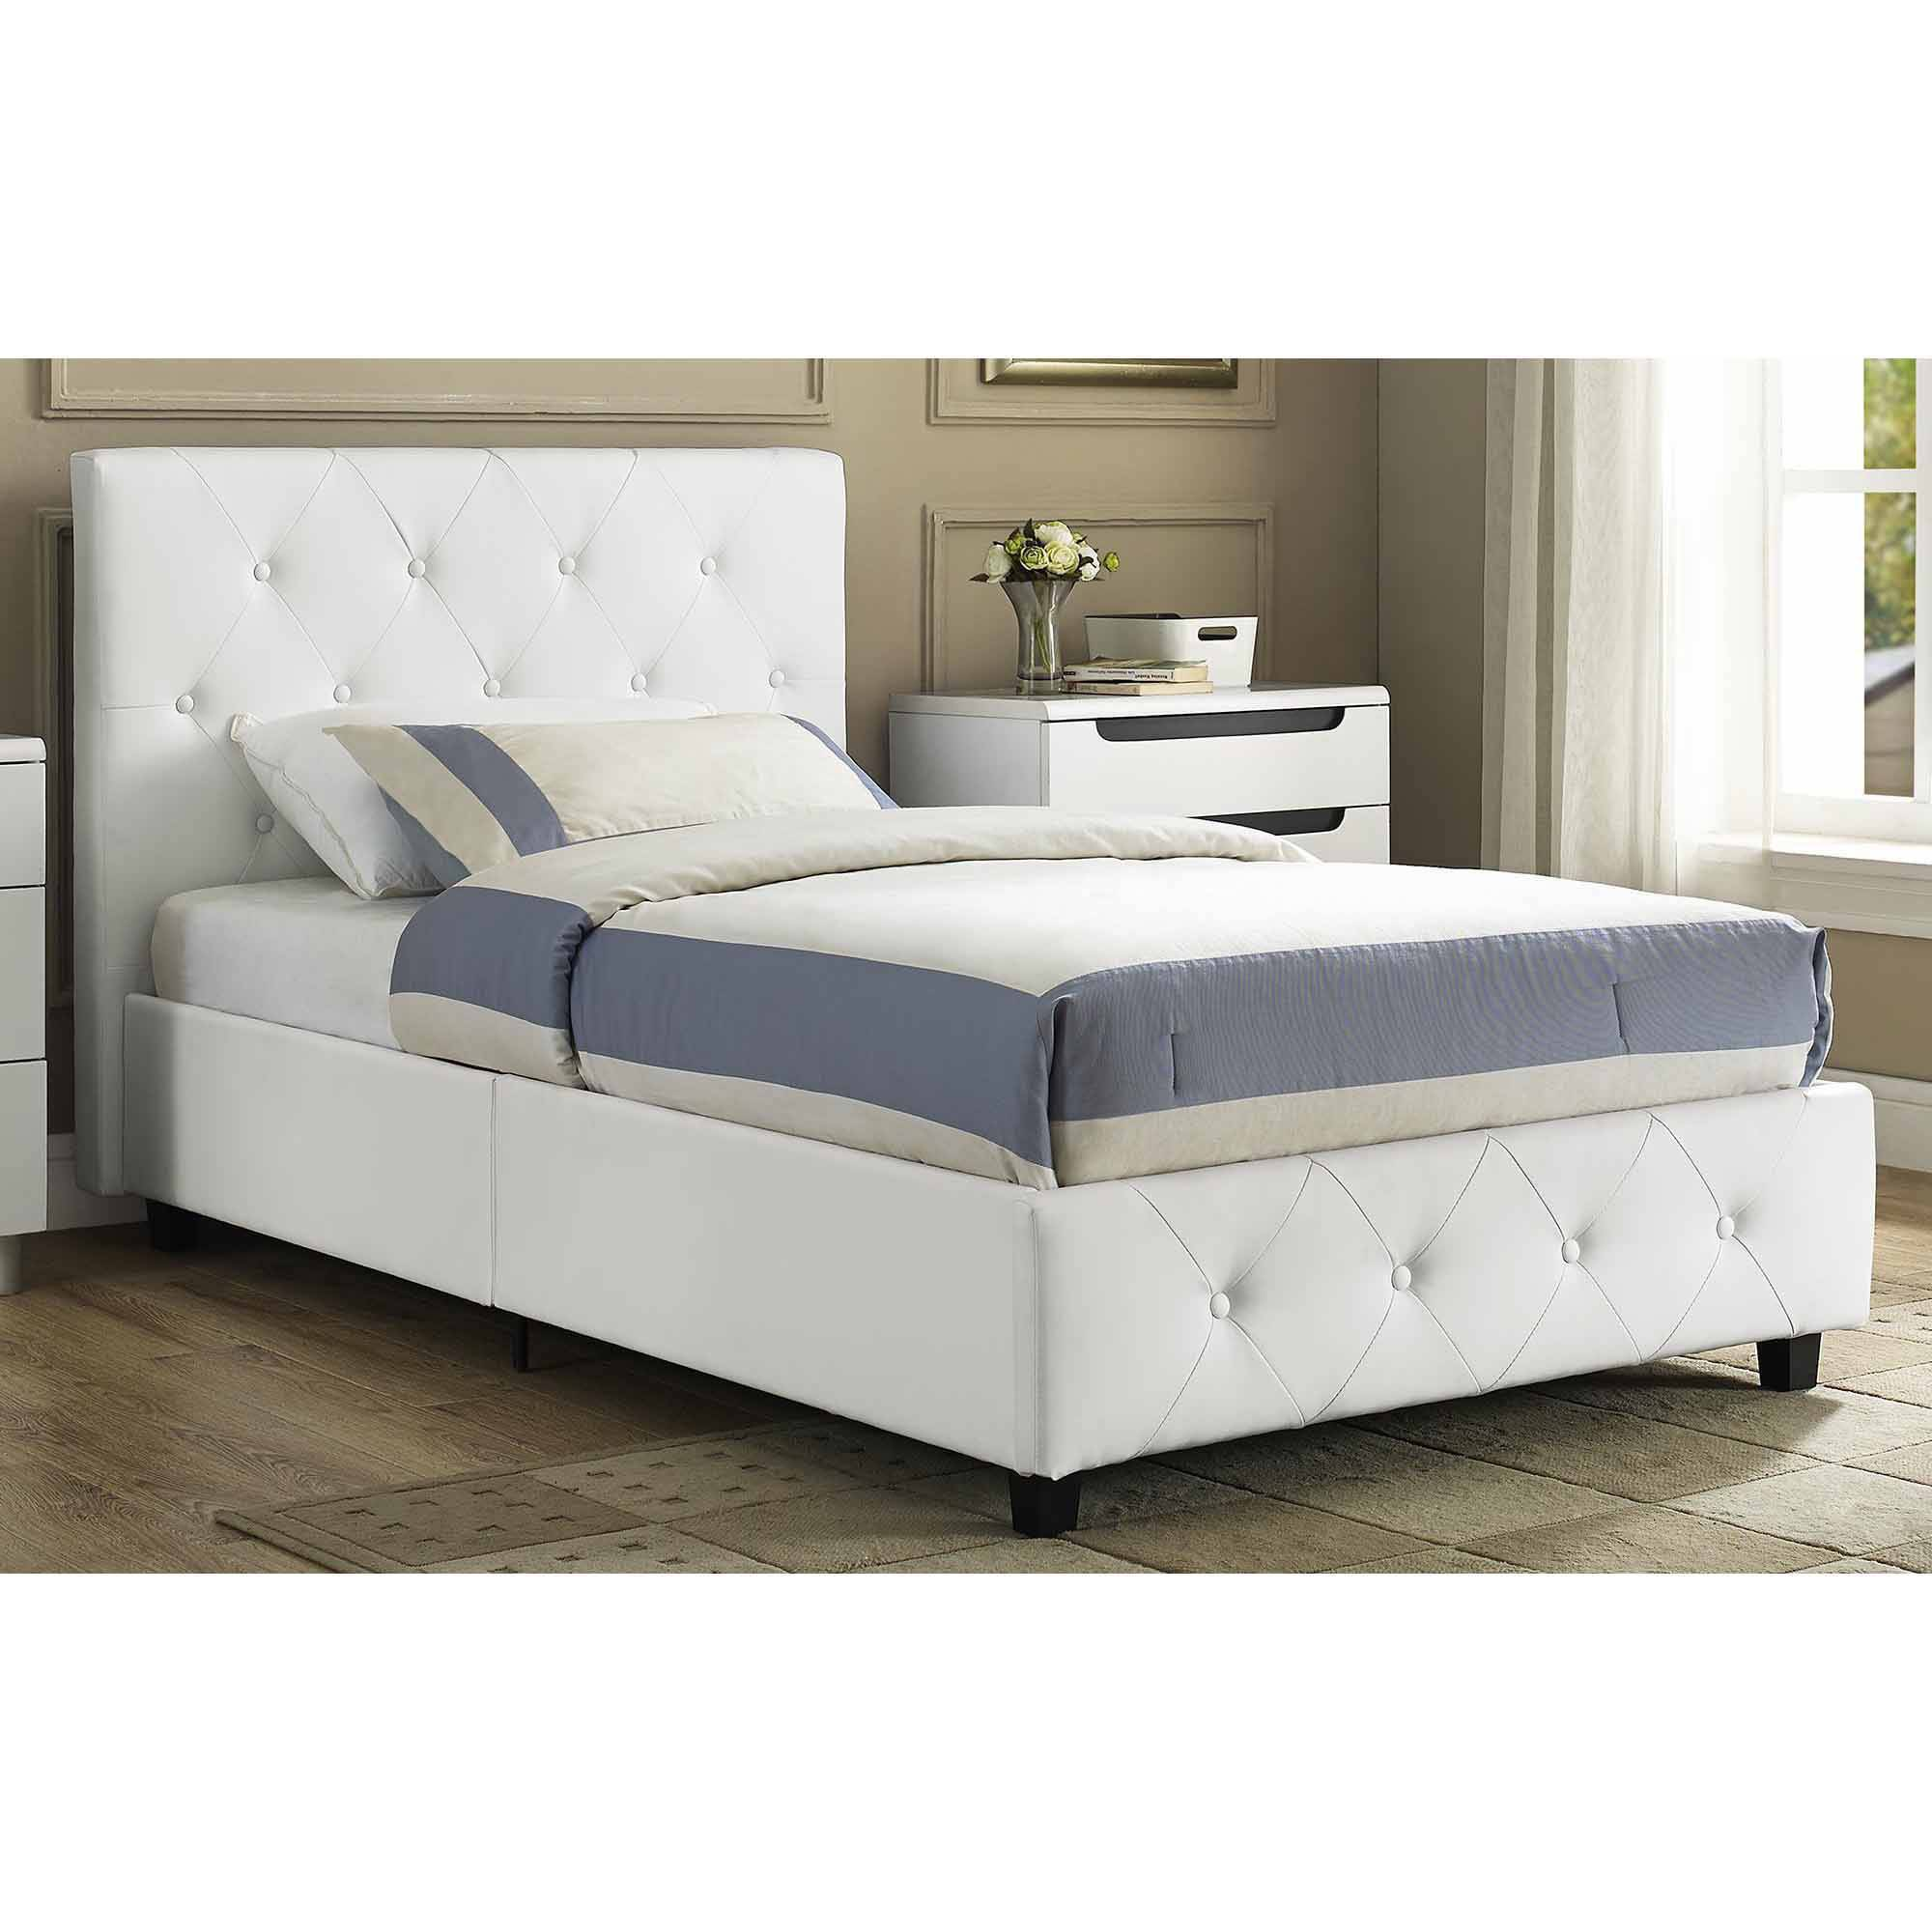 mainstays upholstered bed multiple colors queen walmartcom - Queen Upholstered Bed Frame